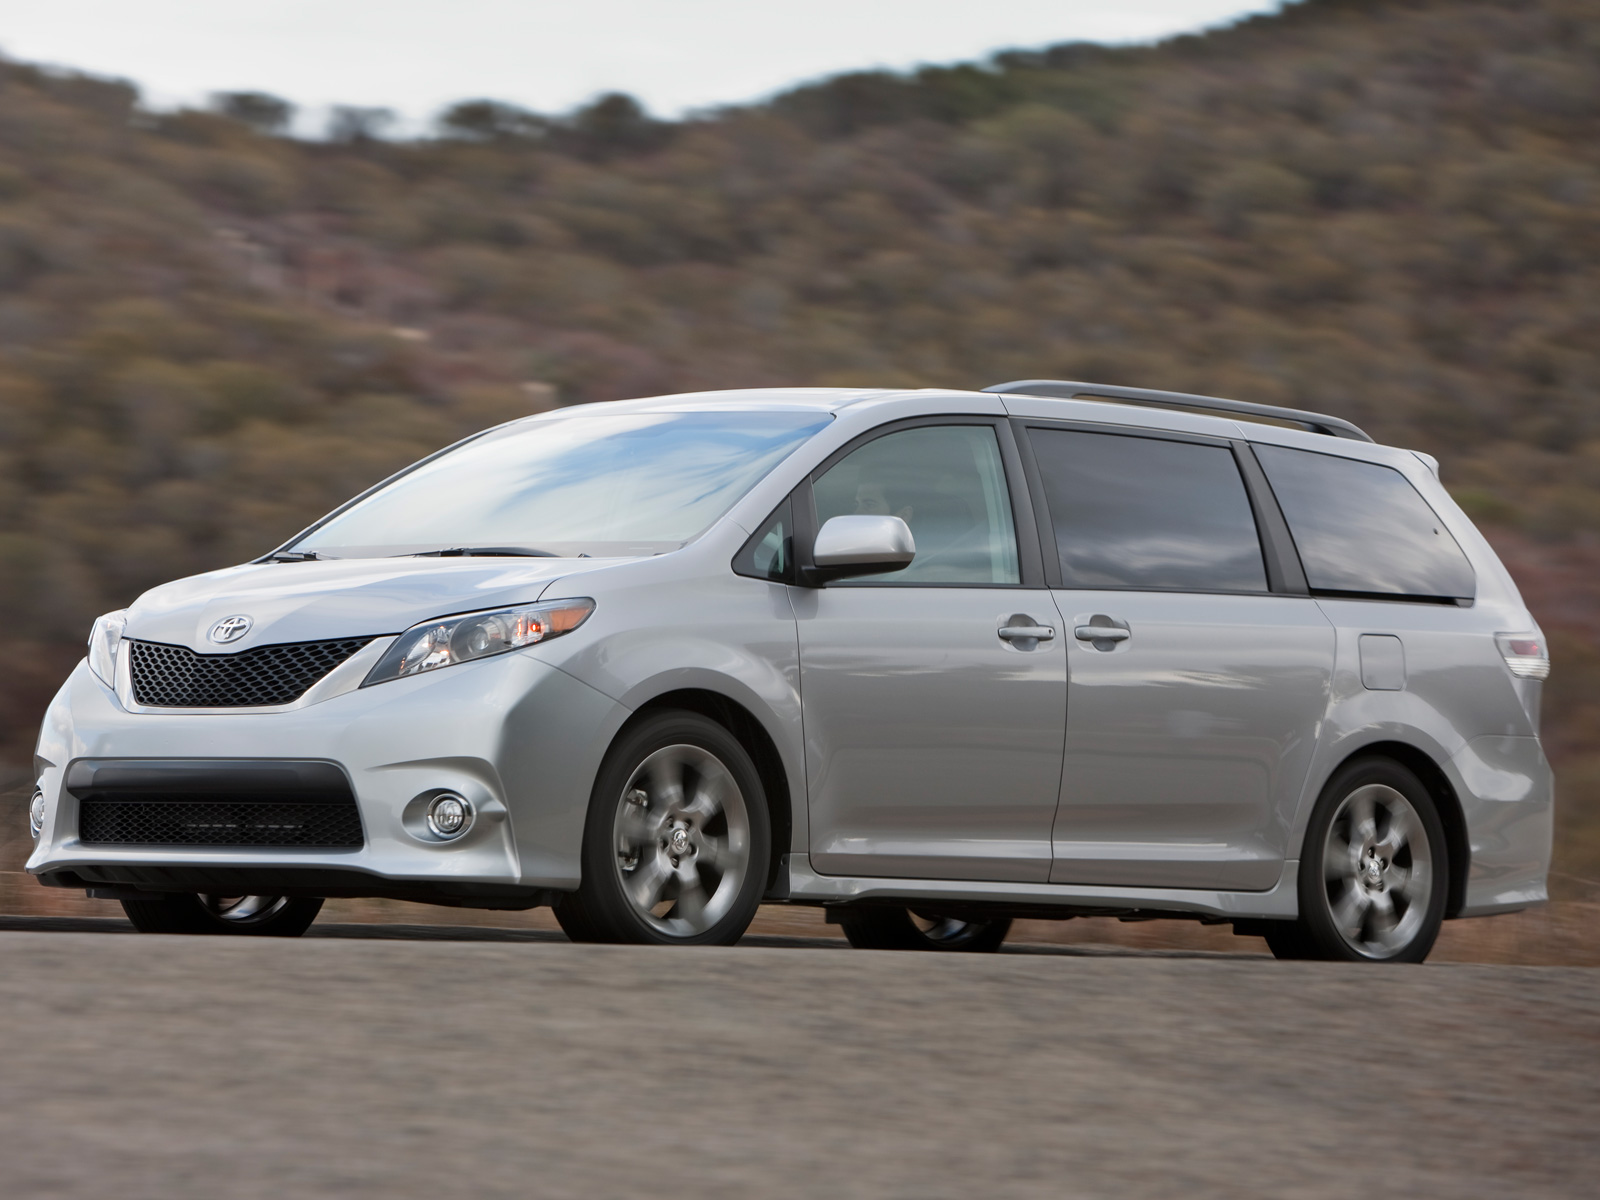 2011 toyota sienna toyota minivan review automobile. Black Bedroom Furniture Sets. Home Design Ideas